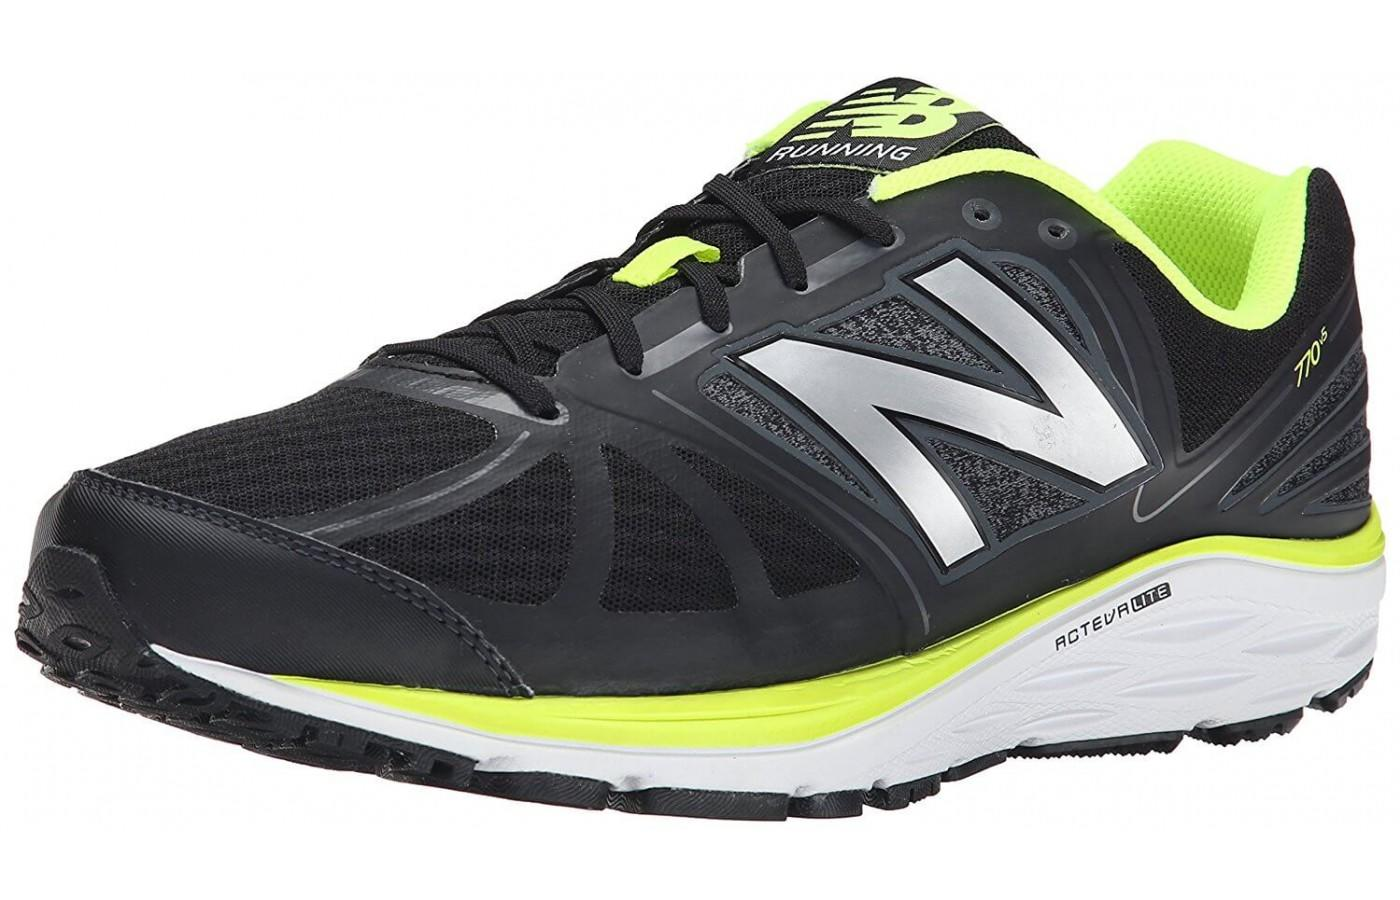 The New Balance 770 v5 reviewed and compared.